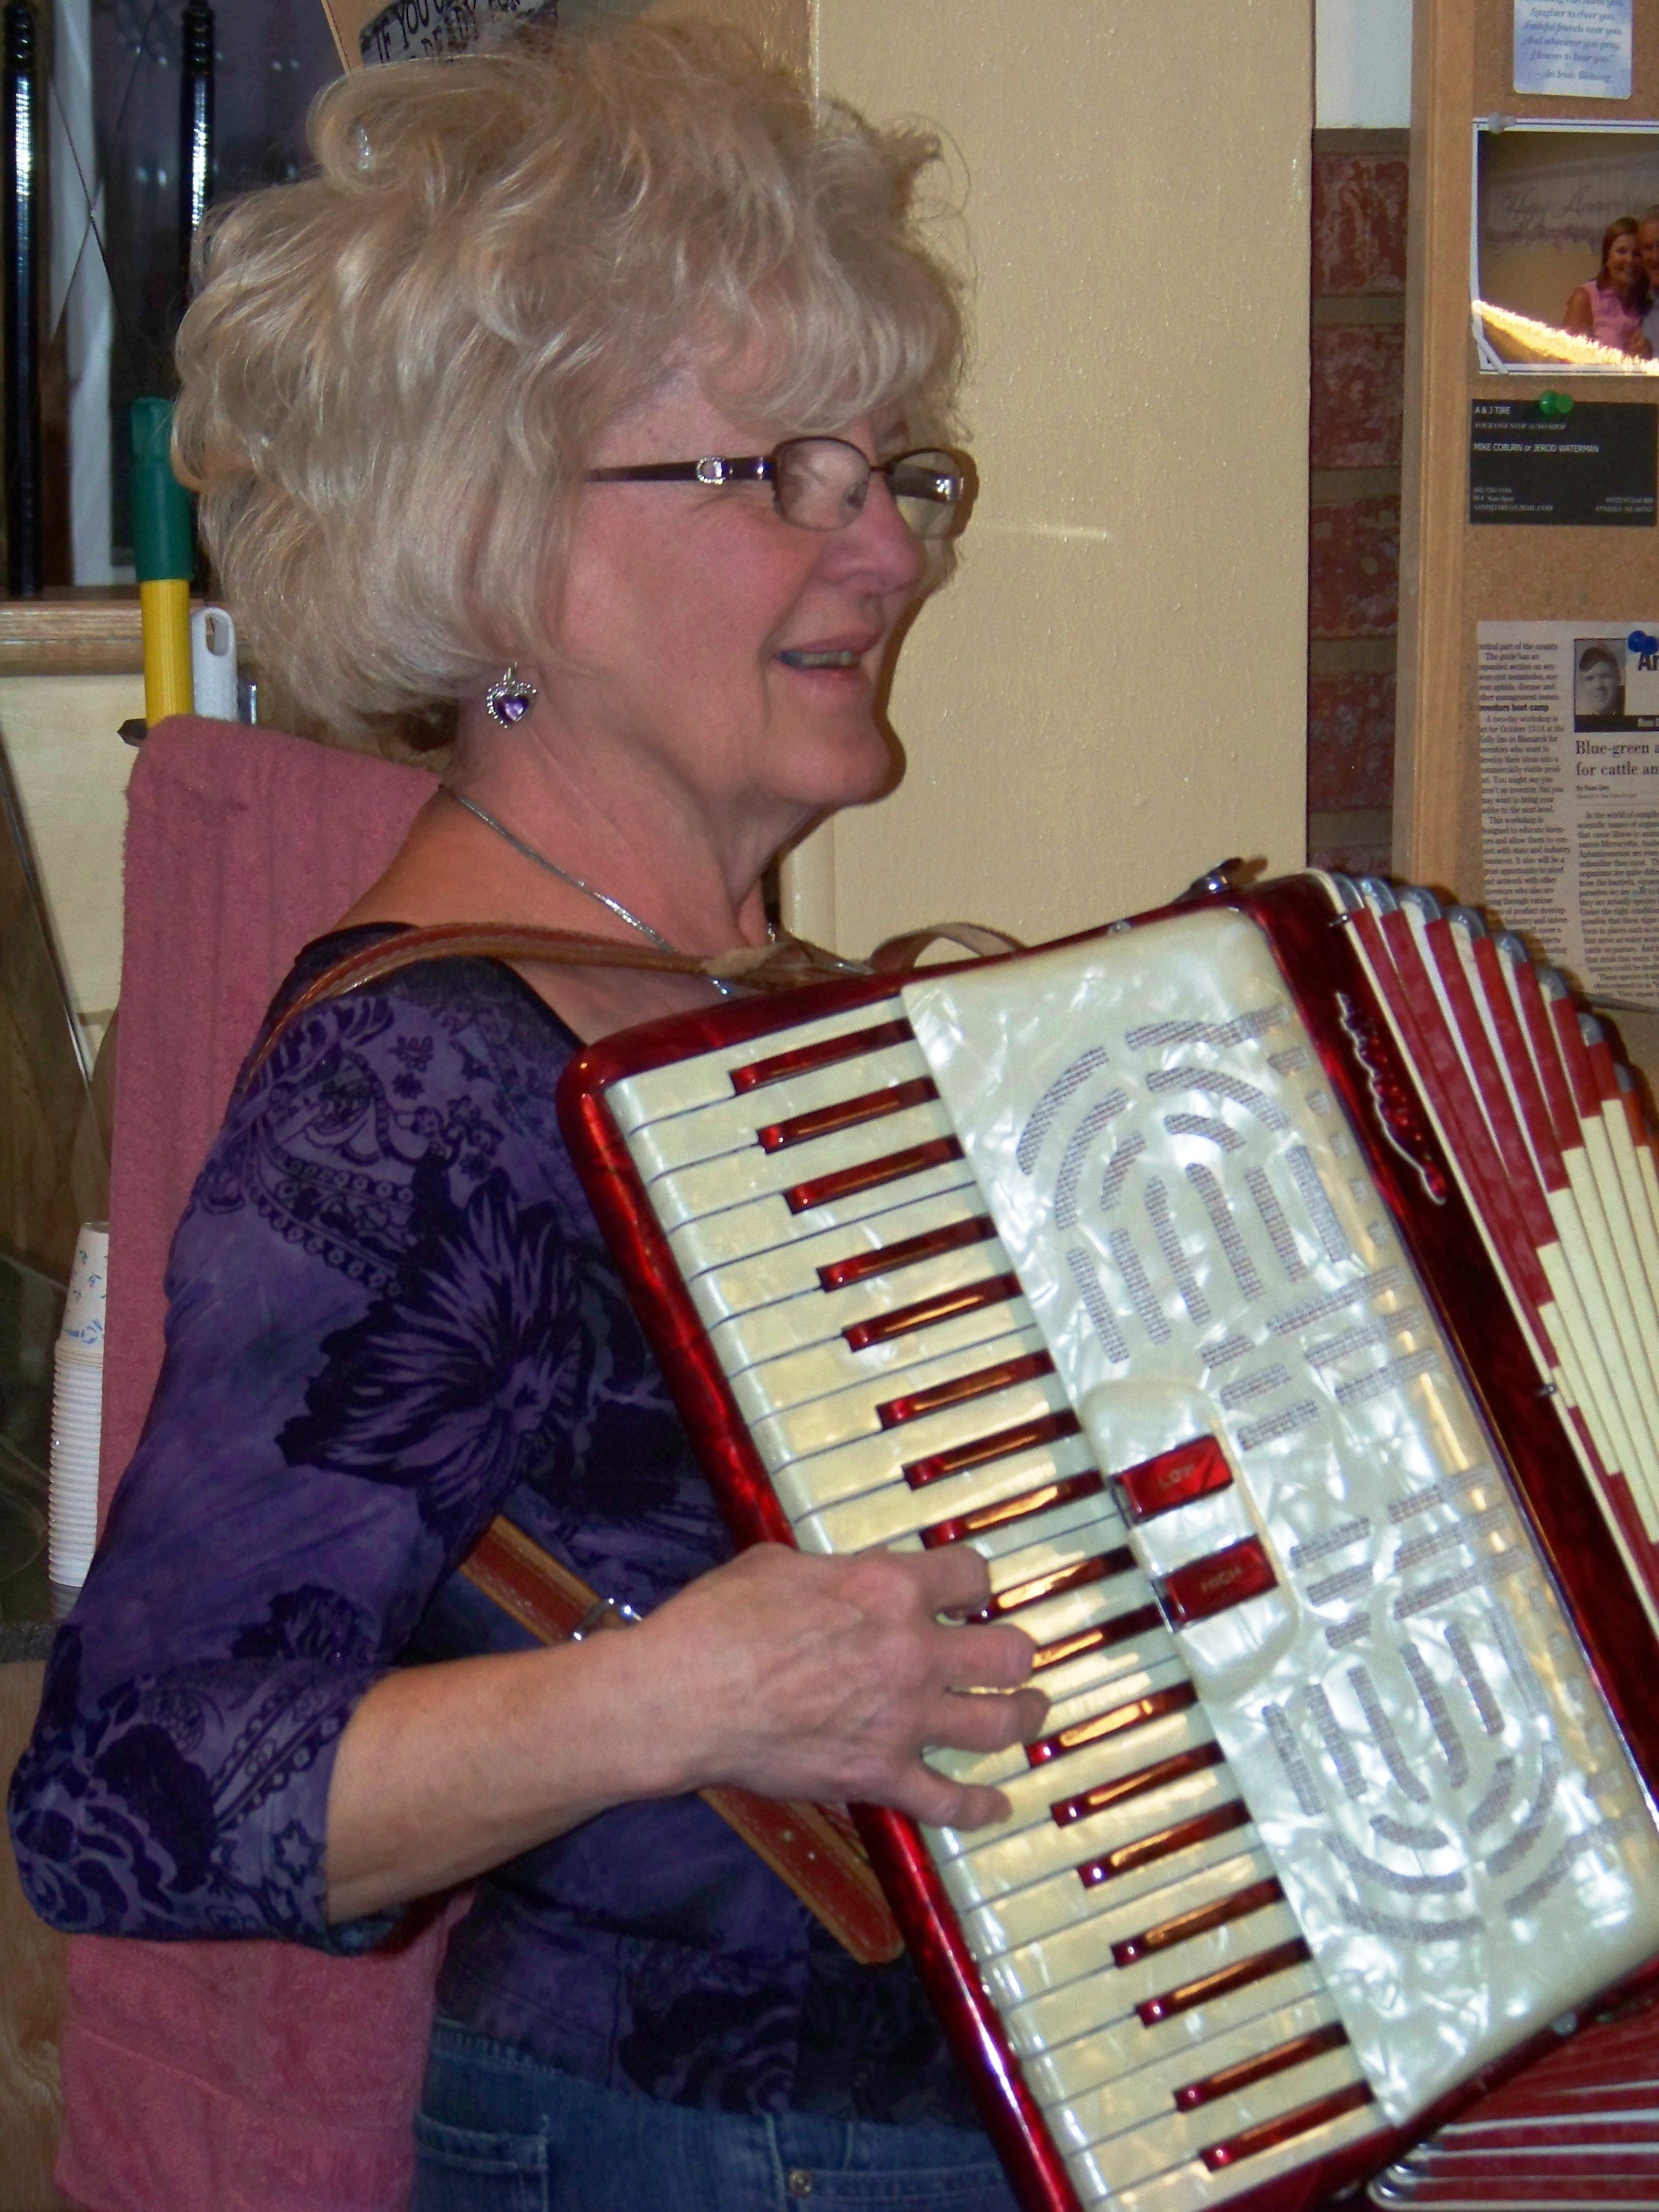 Mom on her accordian